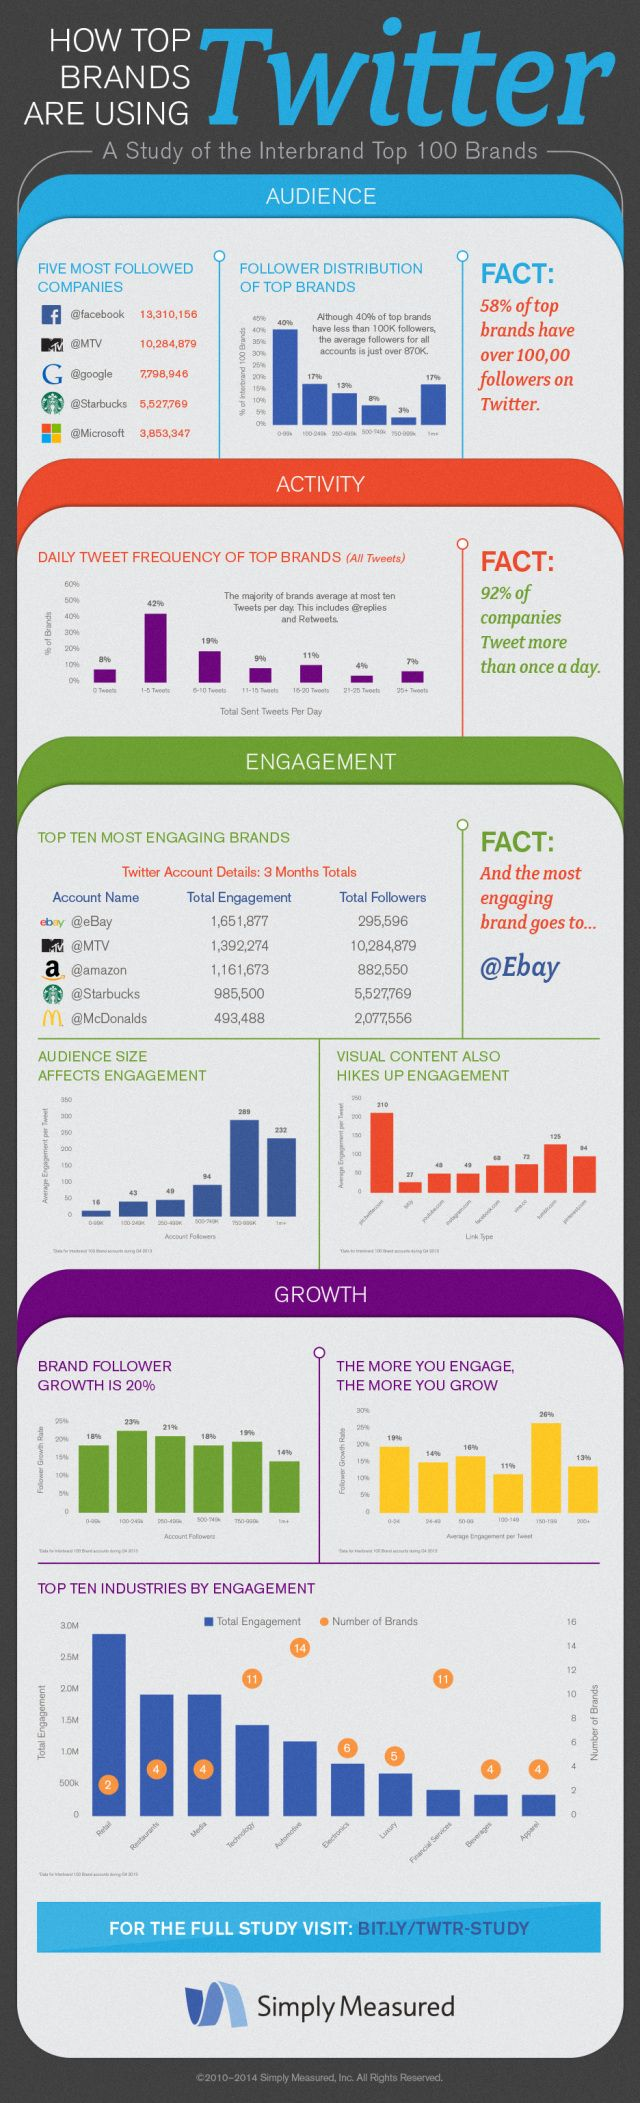 How Top Brands Are Using Twitter #infographic